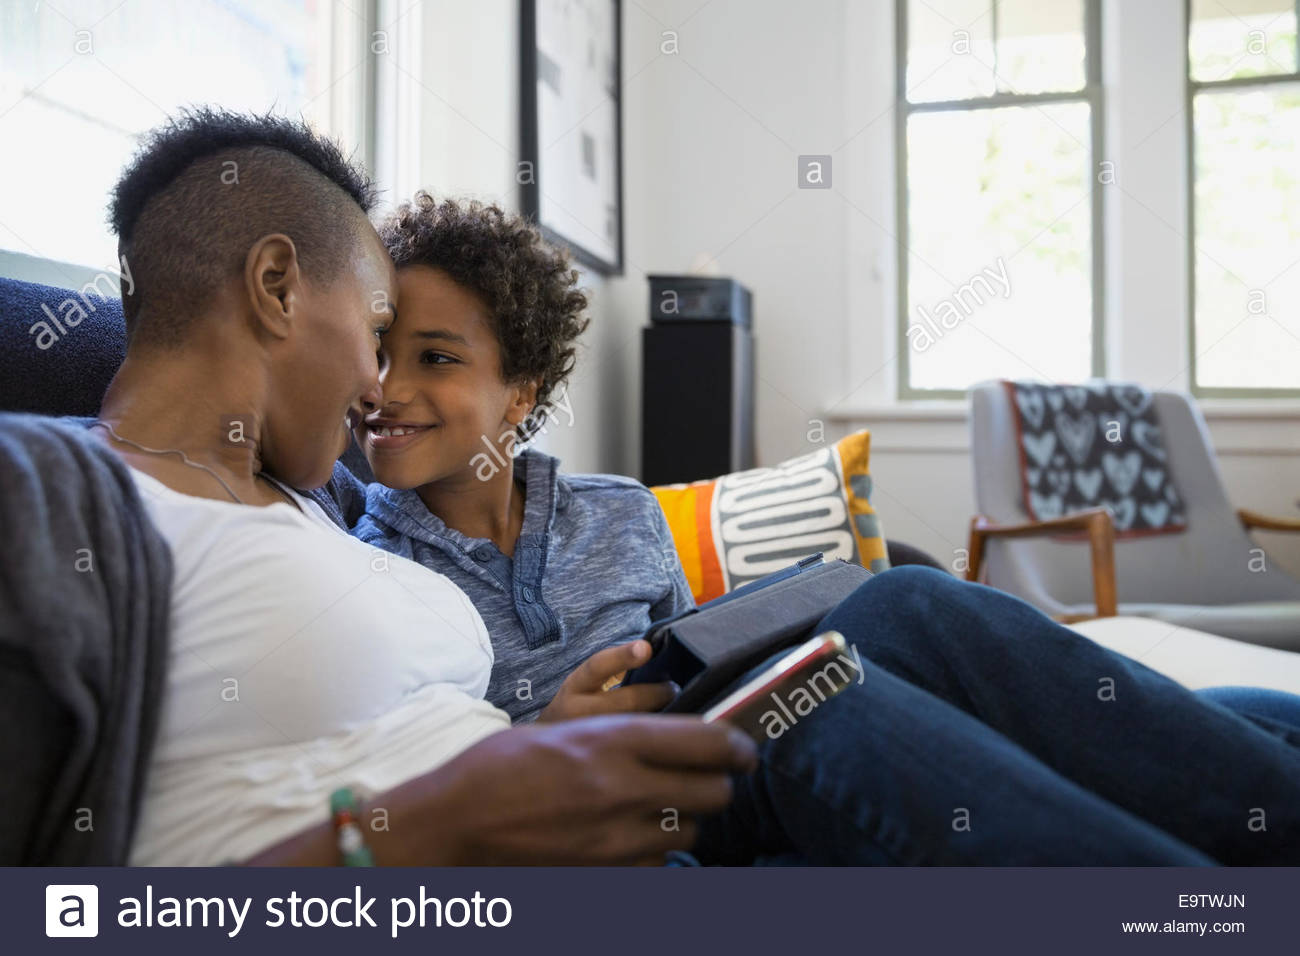 Mother and son rubbing noses on sofa - Stock Image